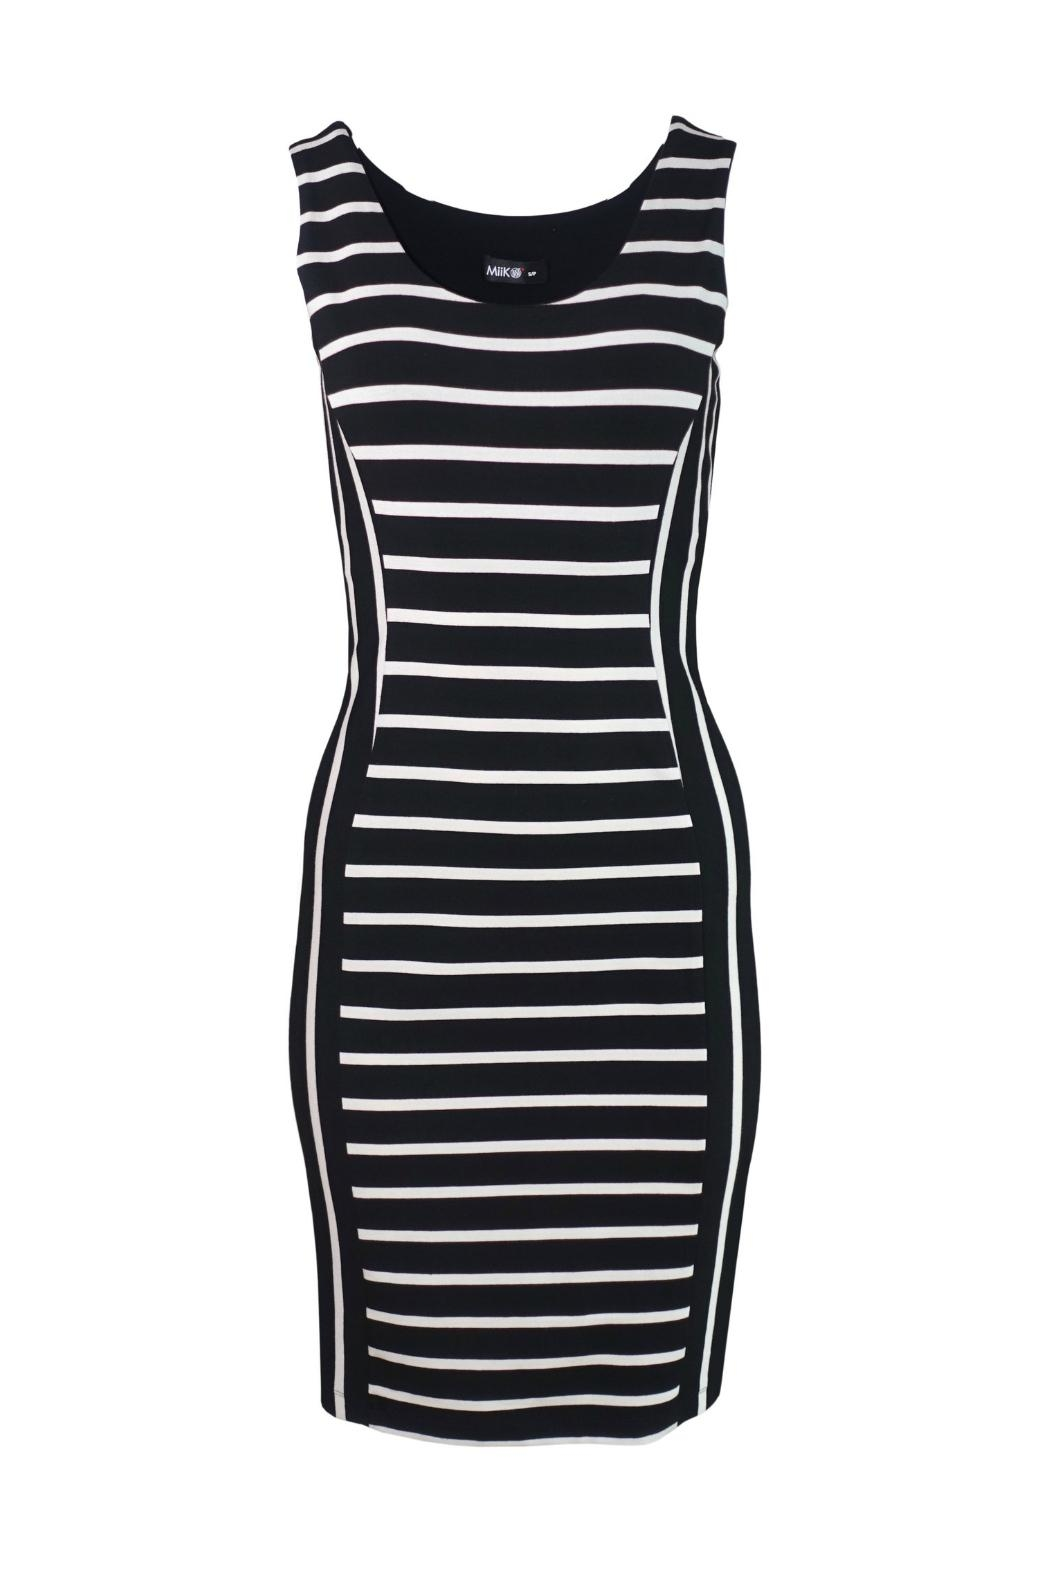 Miik Reversible Stripe Dress - Main Image